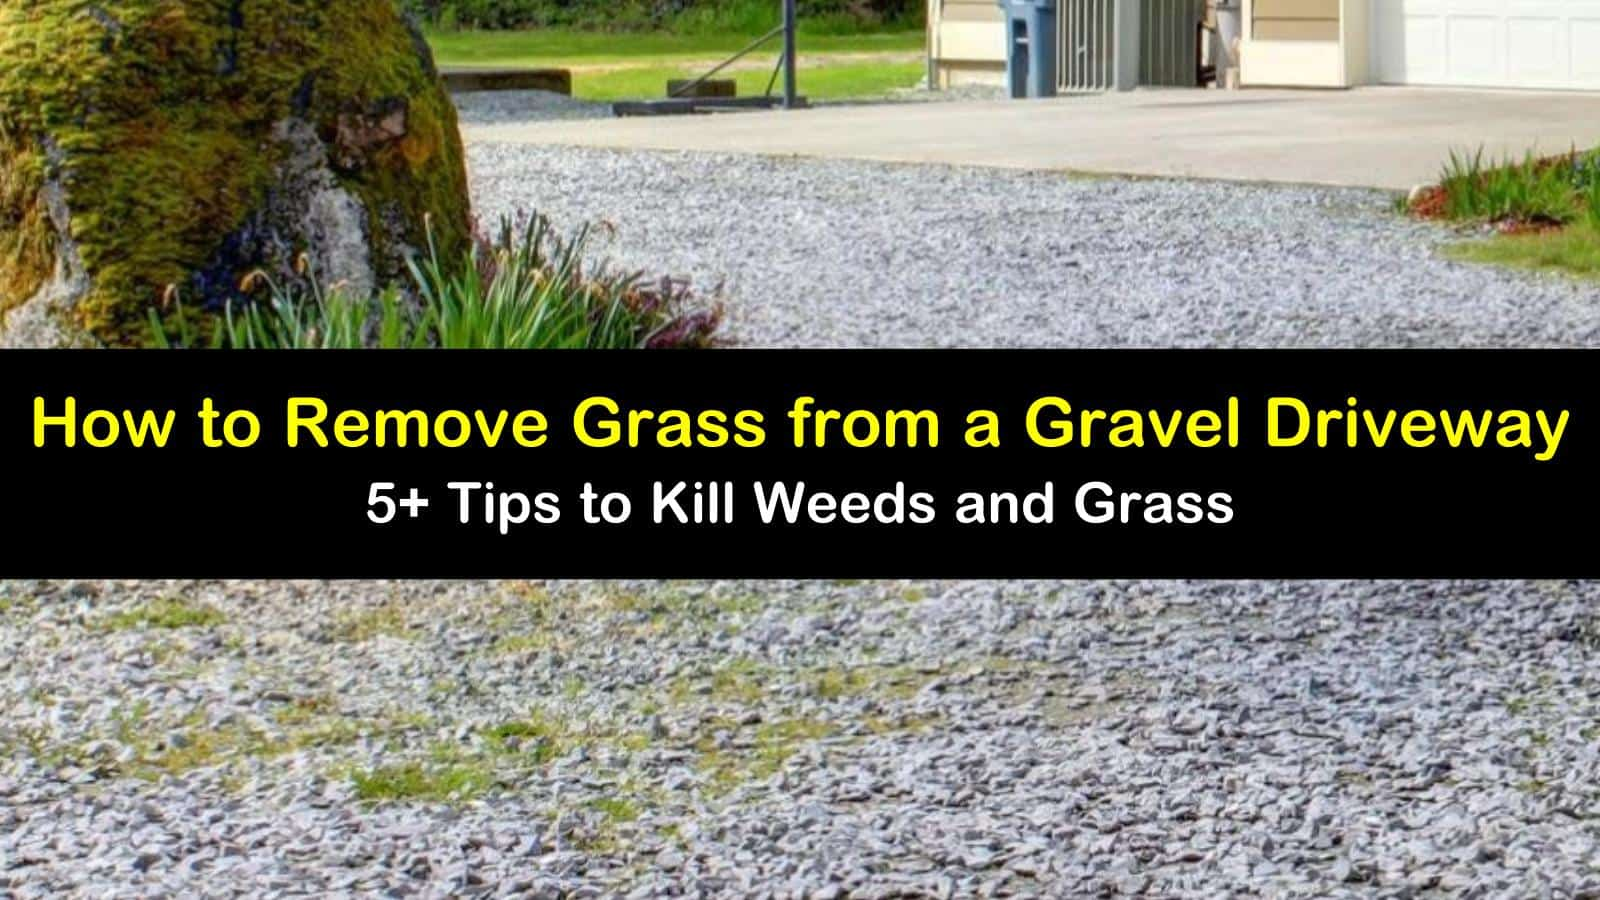 5 Effective Ways To Remove Grass From A Gravel Driveway